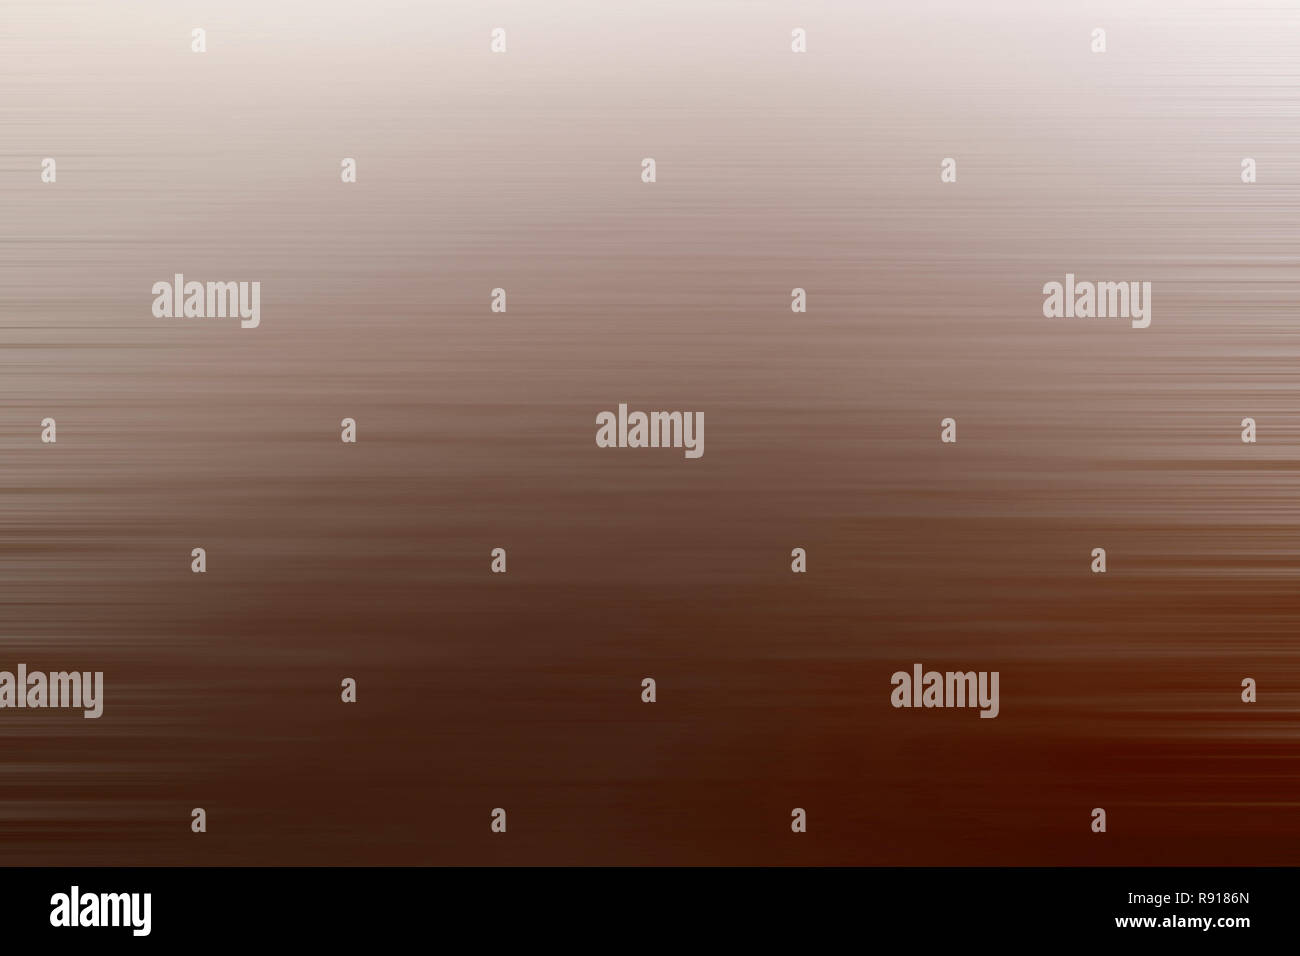 An abstract background of a brown color as a graphic resource - Stock Image